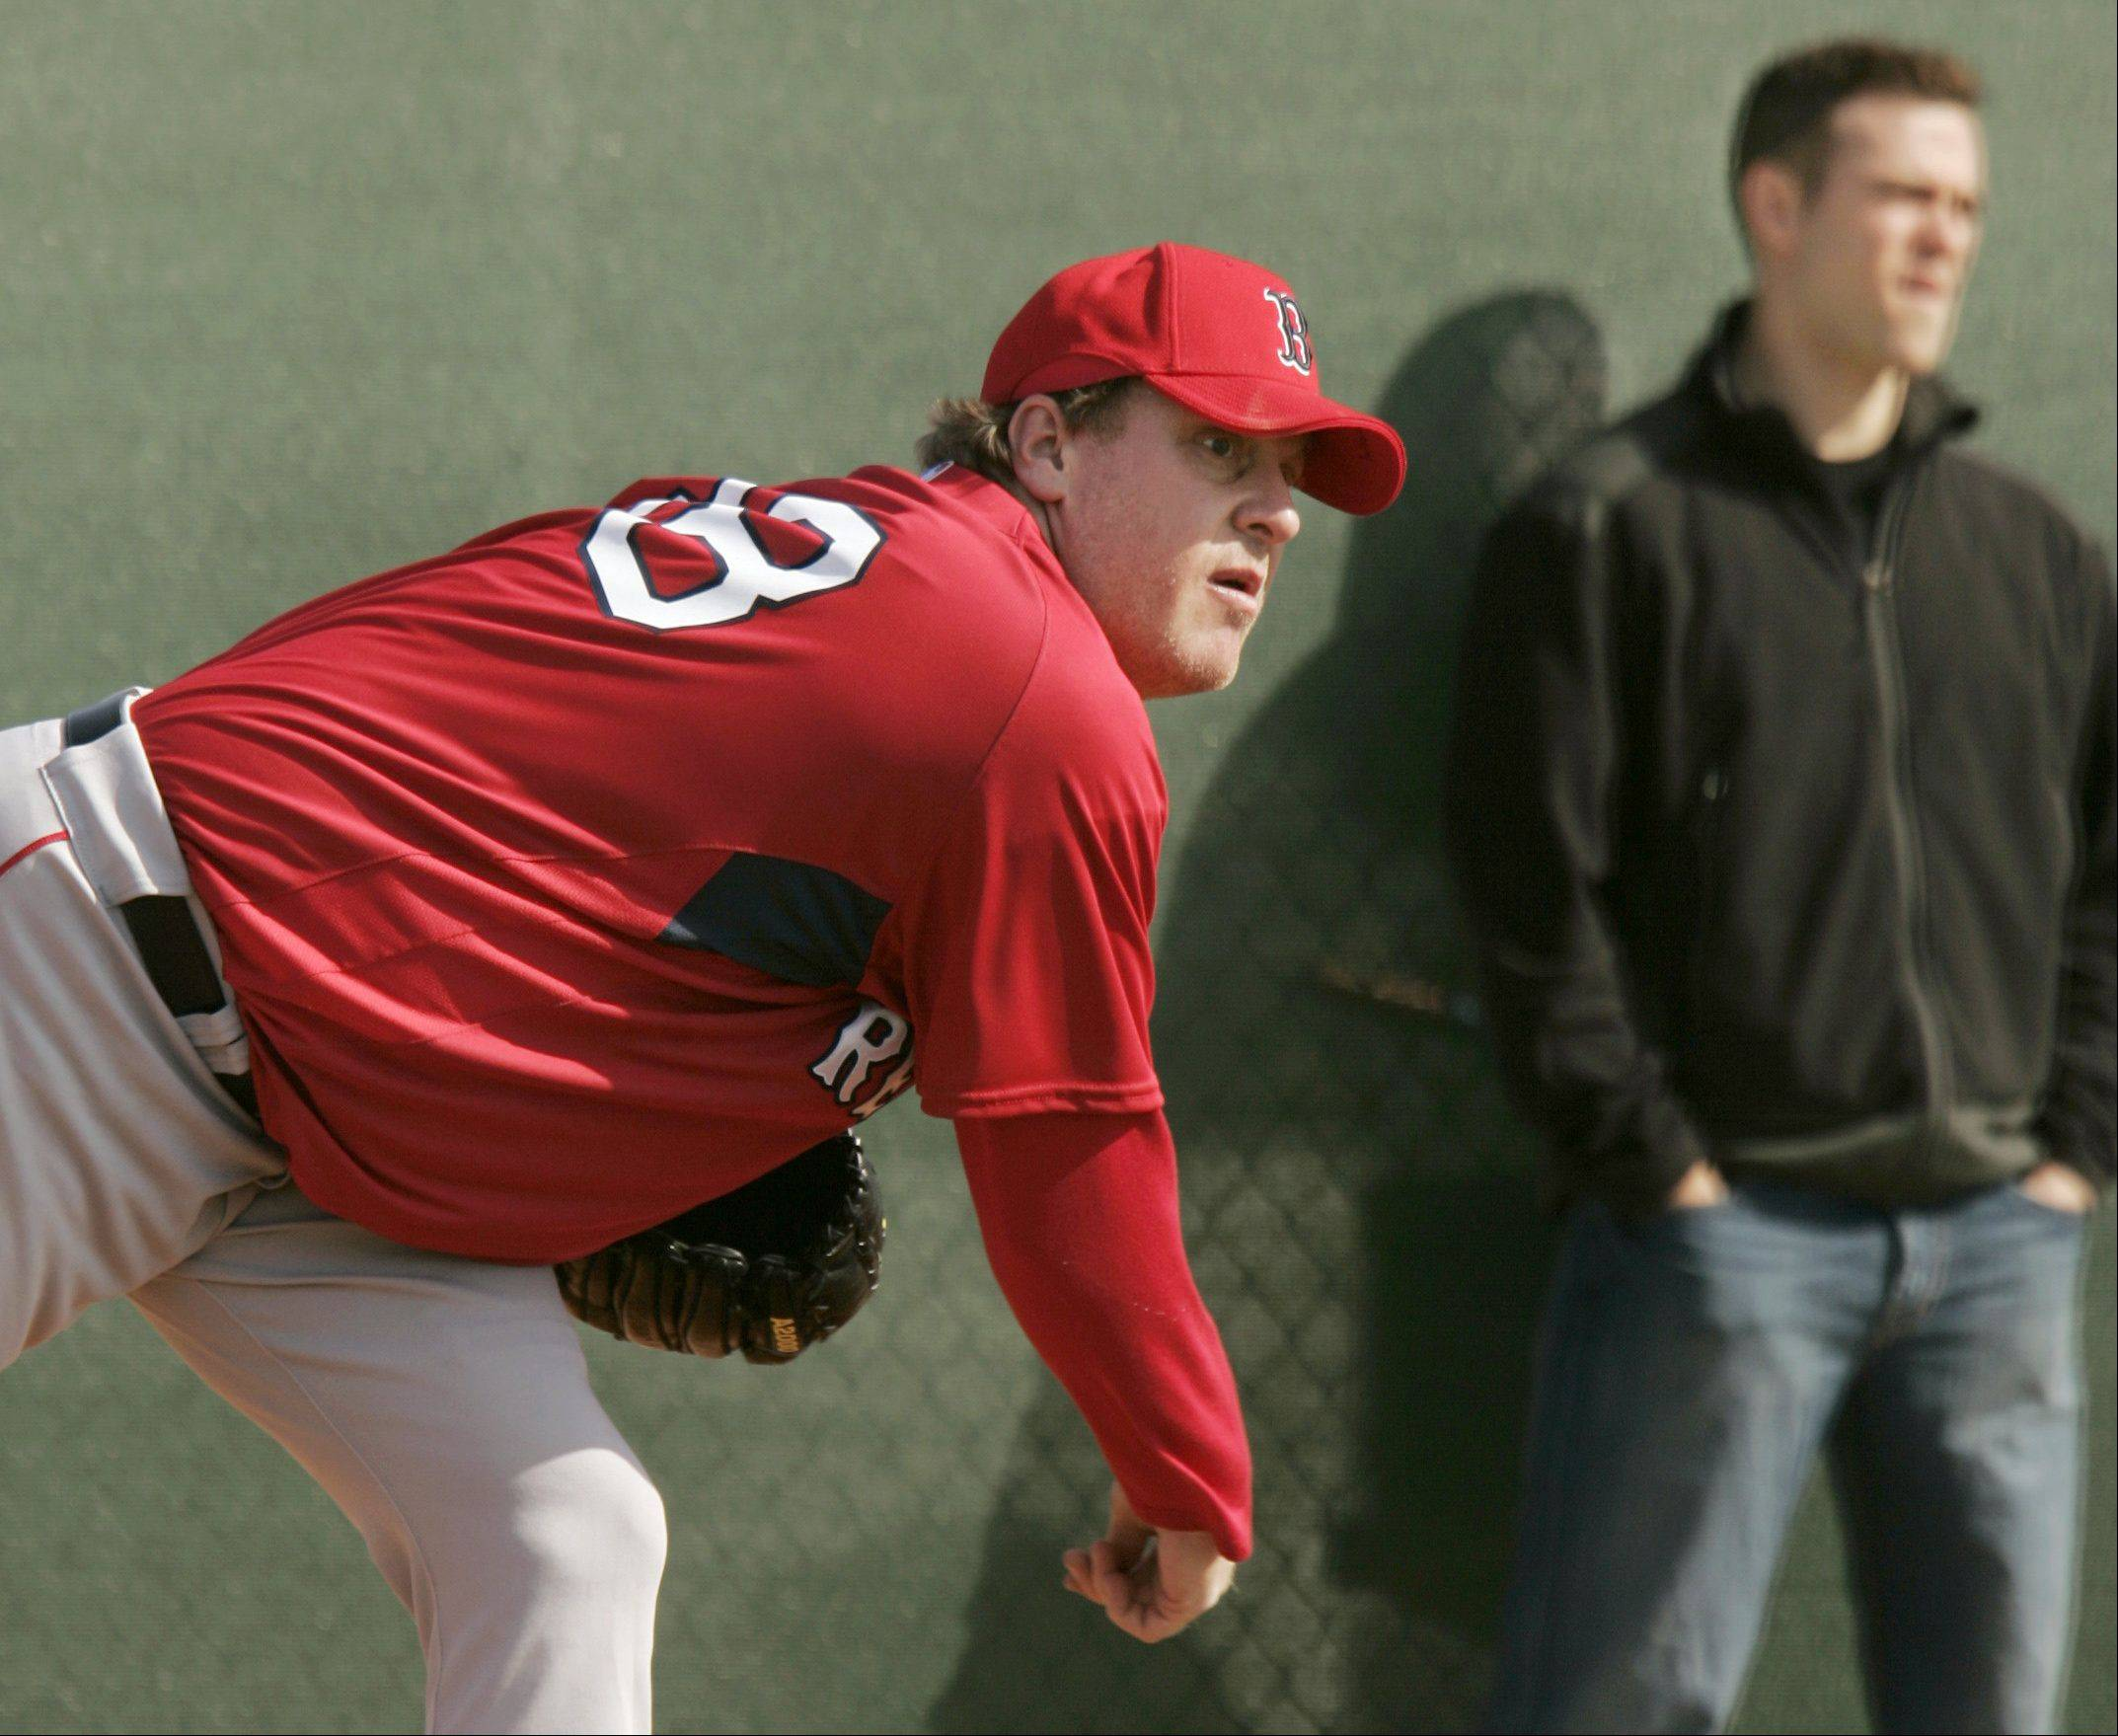 Boston Red Sox pitcher Curt Schilling, left, delivers a throw as Red Sox general manager Theo Epstein, right, looks on at baseball spring training at the team's minor league training complex, in Fort Myers, Fla., Sunday, Feb. 18, 2007.